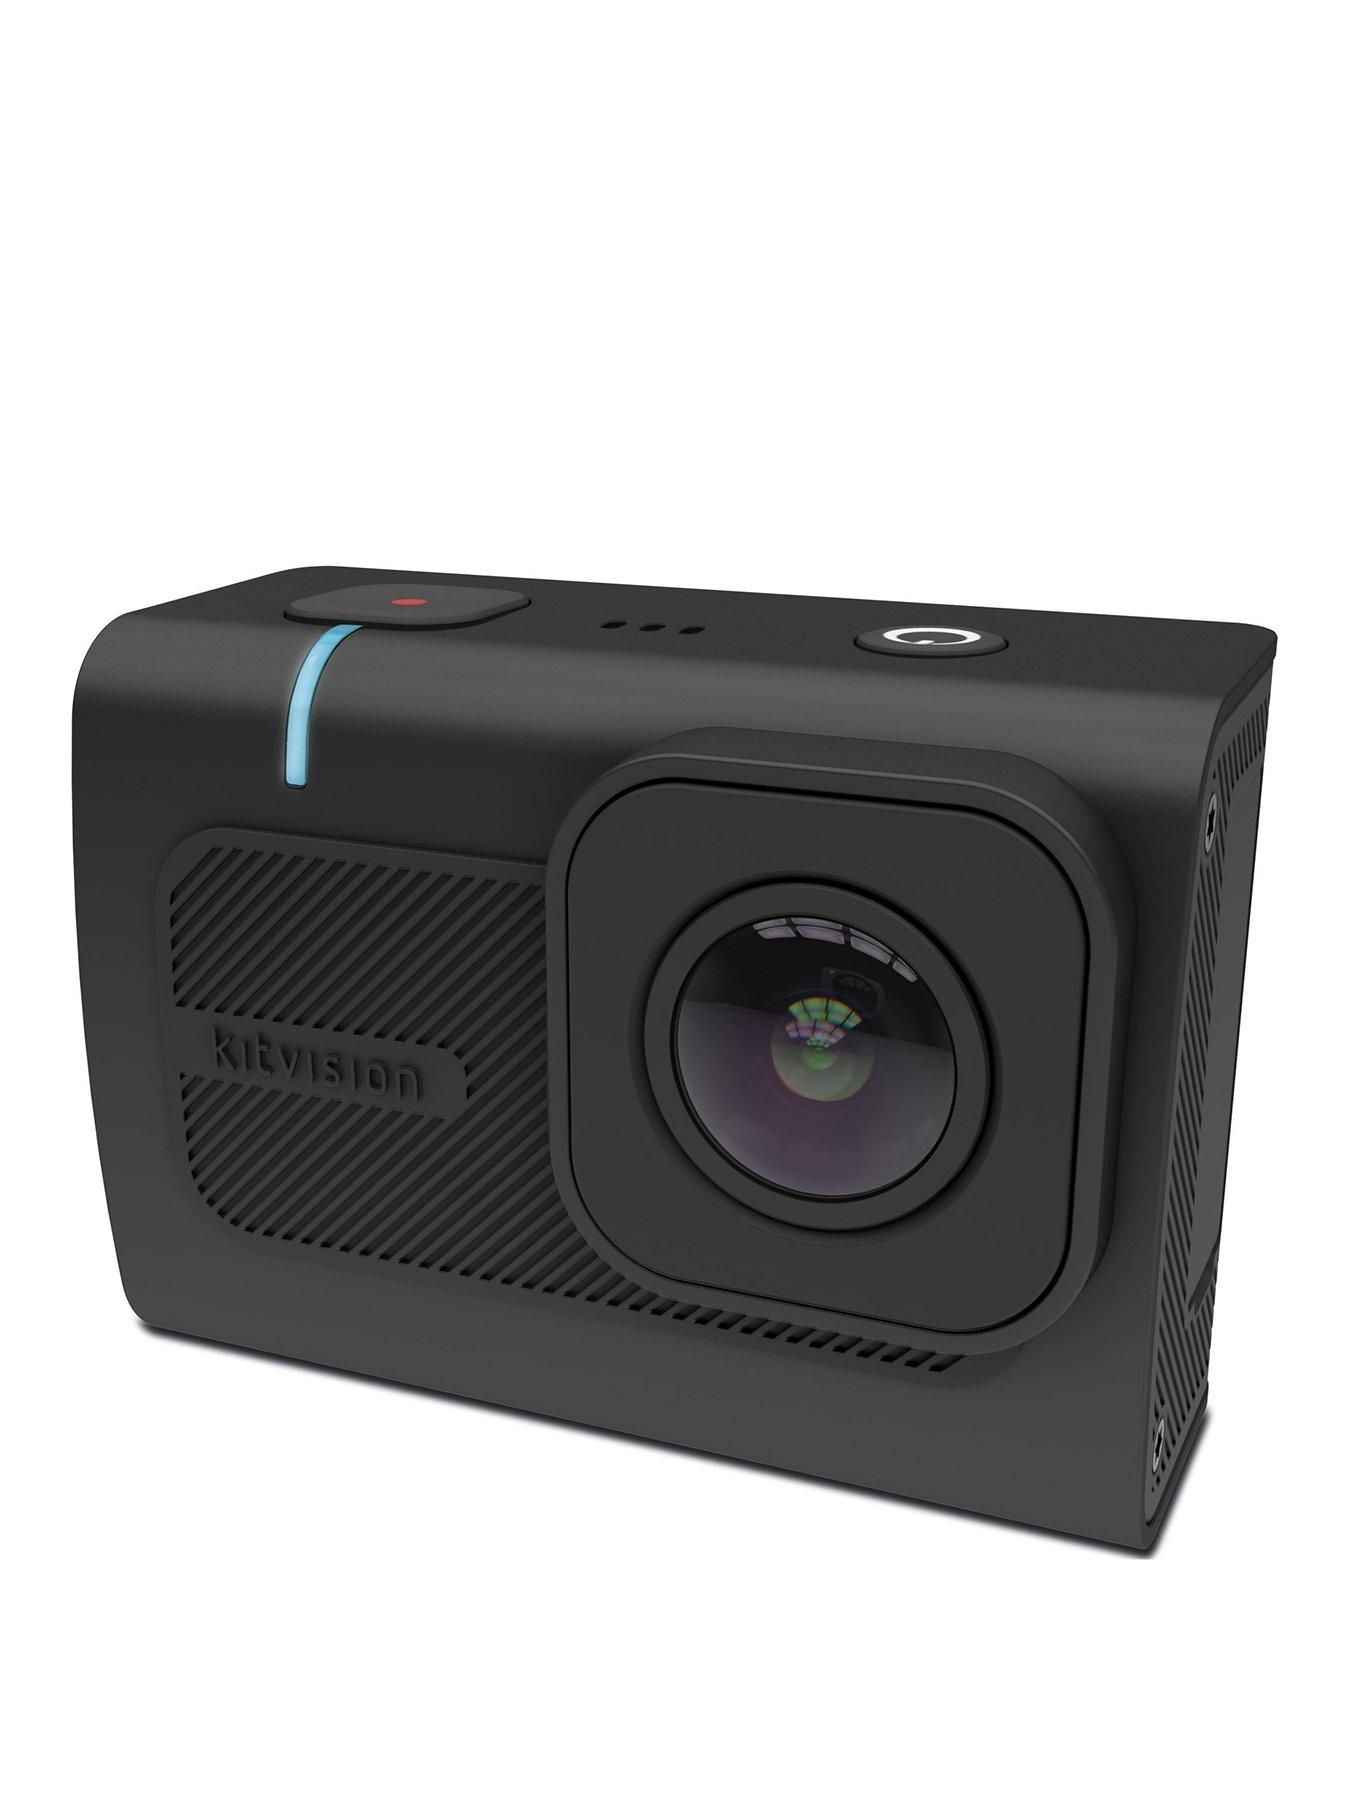 Kitvision Kitvision Venture 4K Resolution 16 Megapixel Ultra-Wide Angle Action Camera With Wifi Connectivity And 1.8 Inch Touch Screen Lcd - Black #wideangle